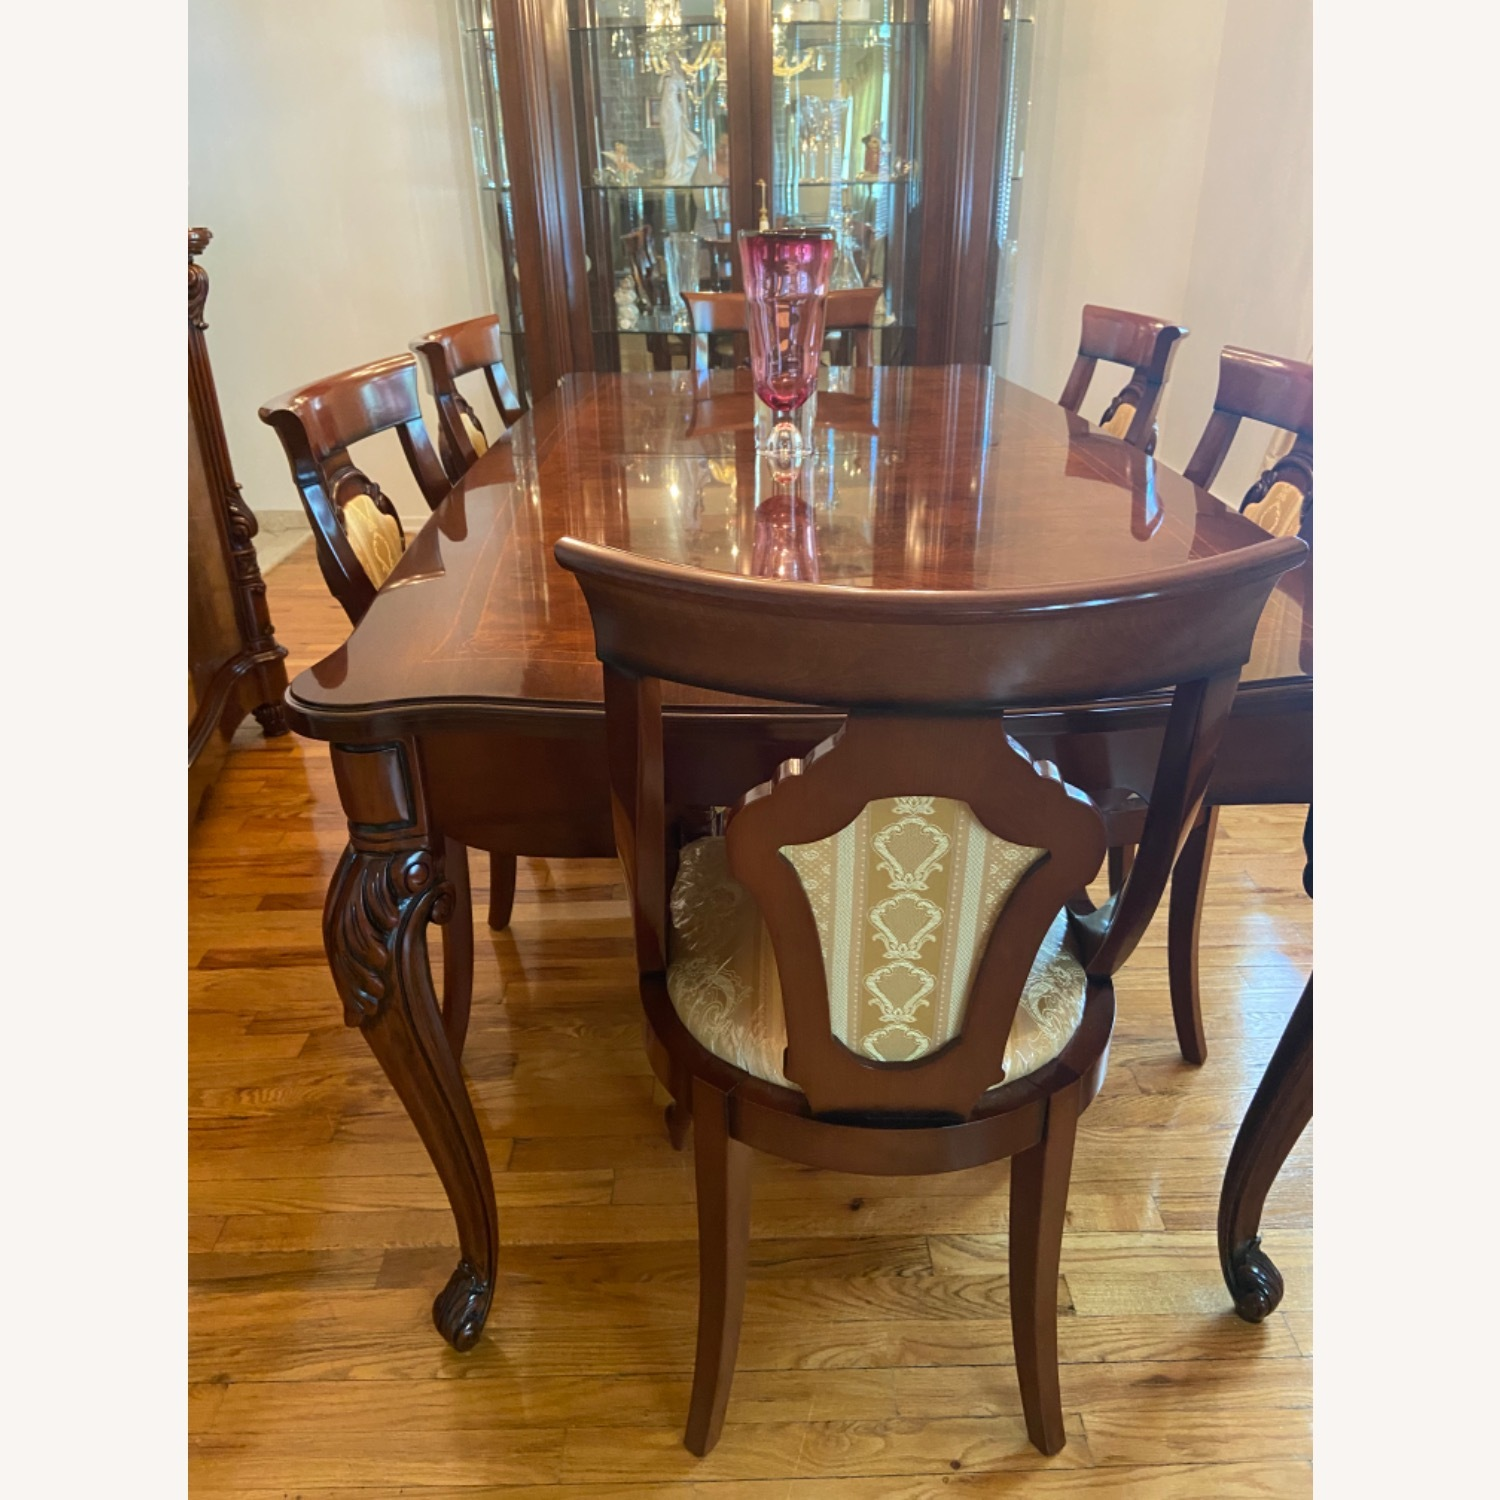 ItalModern Dining Room Table - image-2